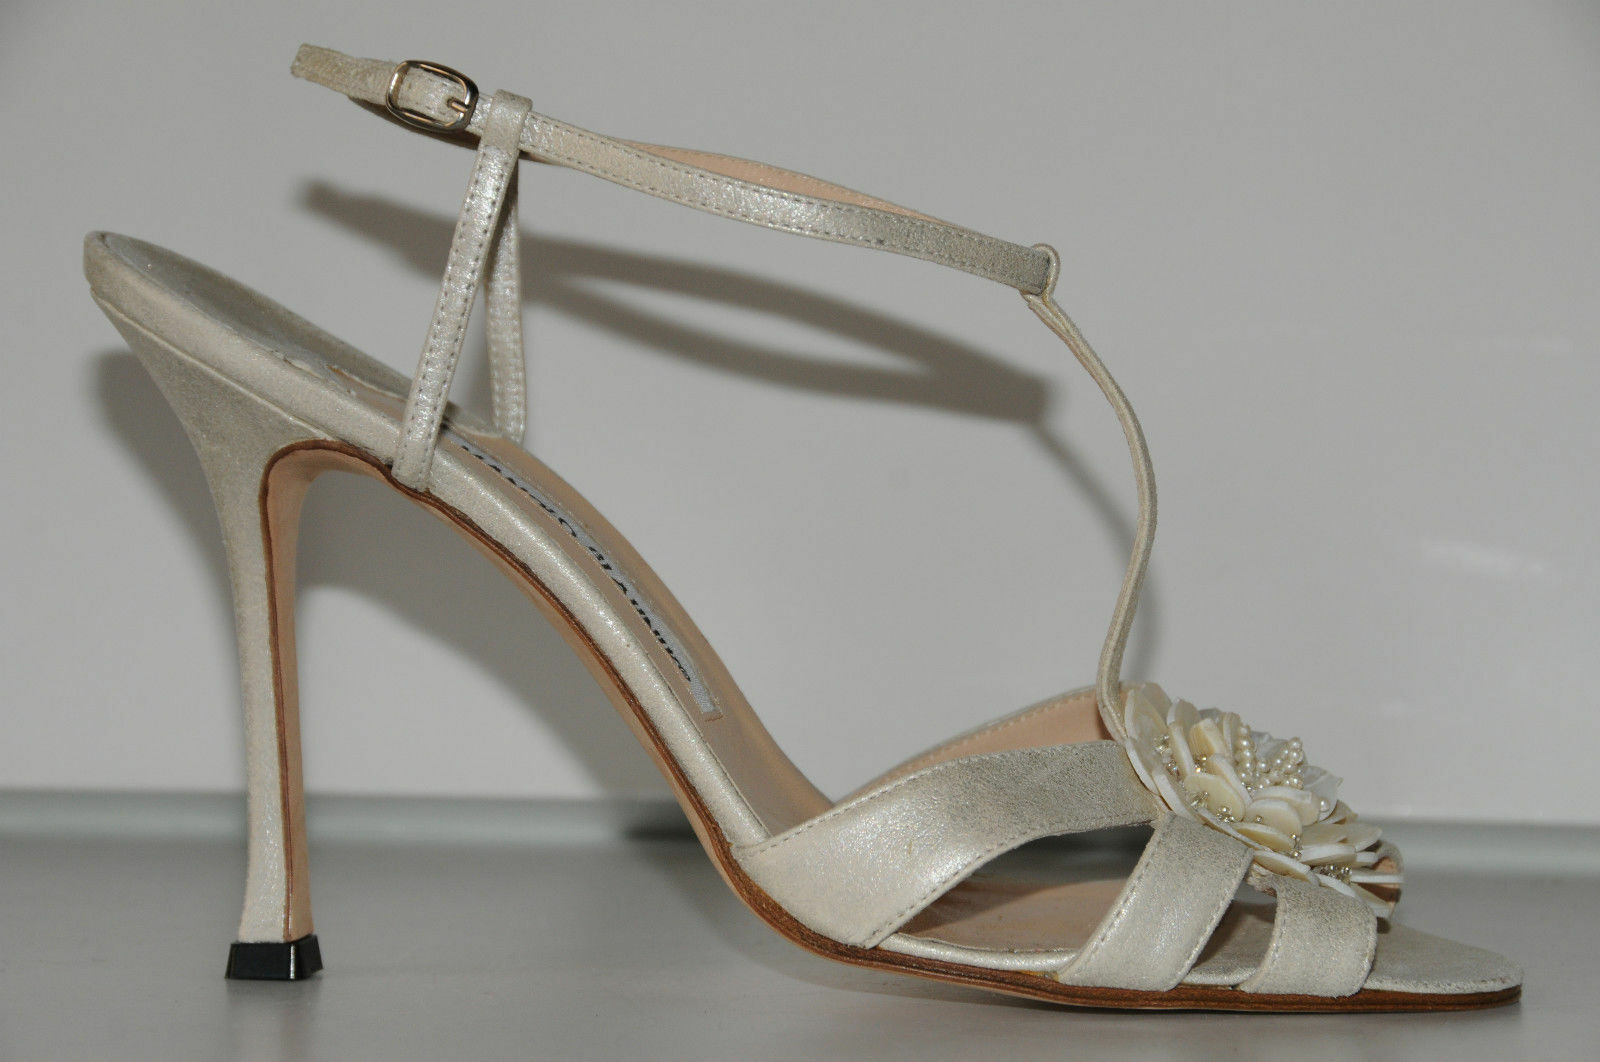 New MANOLO BLAHNIK BLAHNIK BLAHNIK Pearly White Sandals SHOES WEDDING Strappy Jeweled 41.5 9eca21